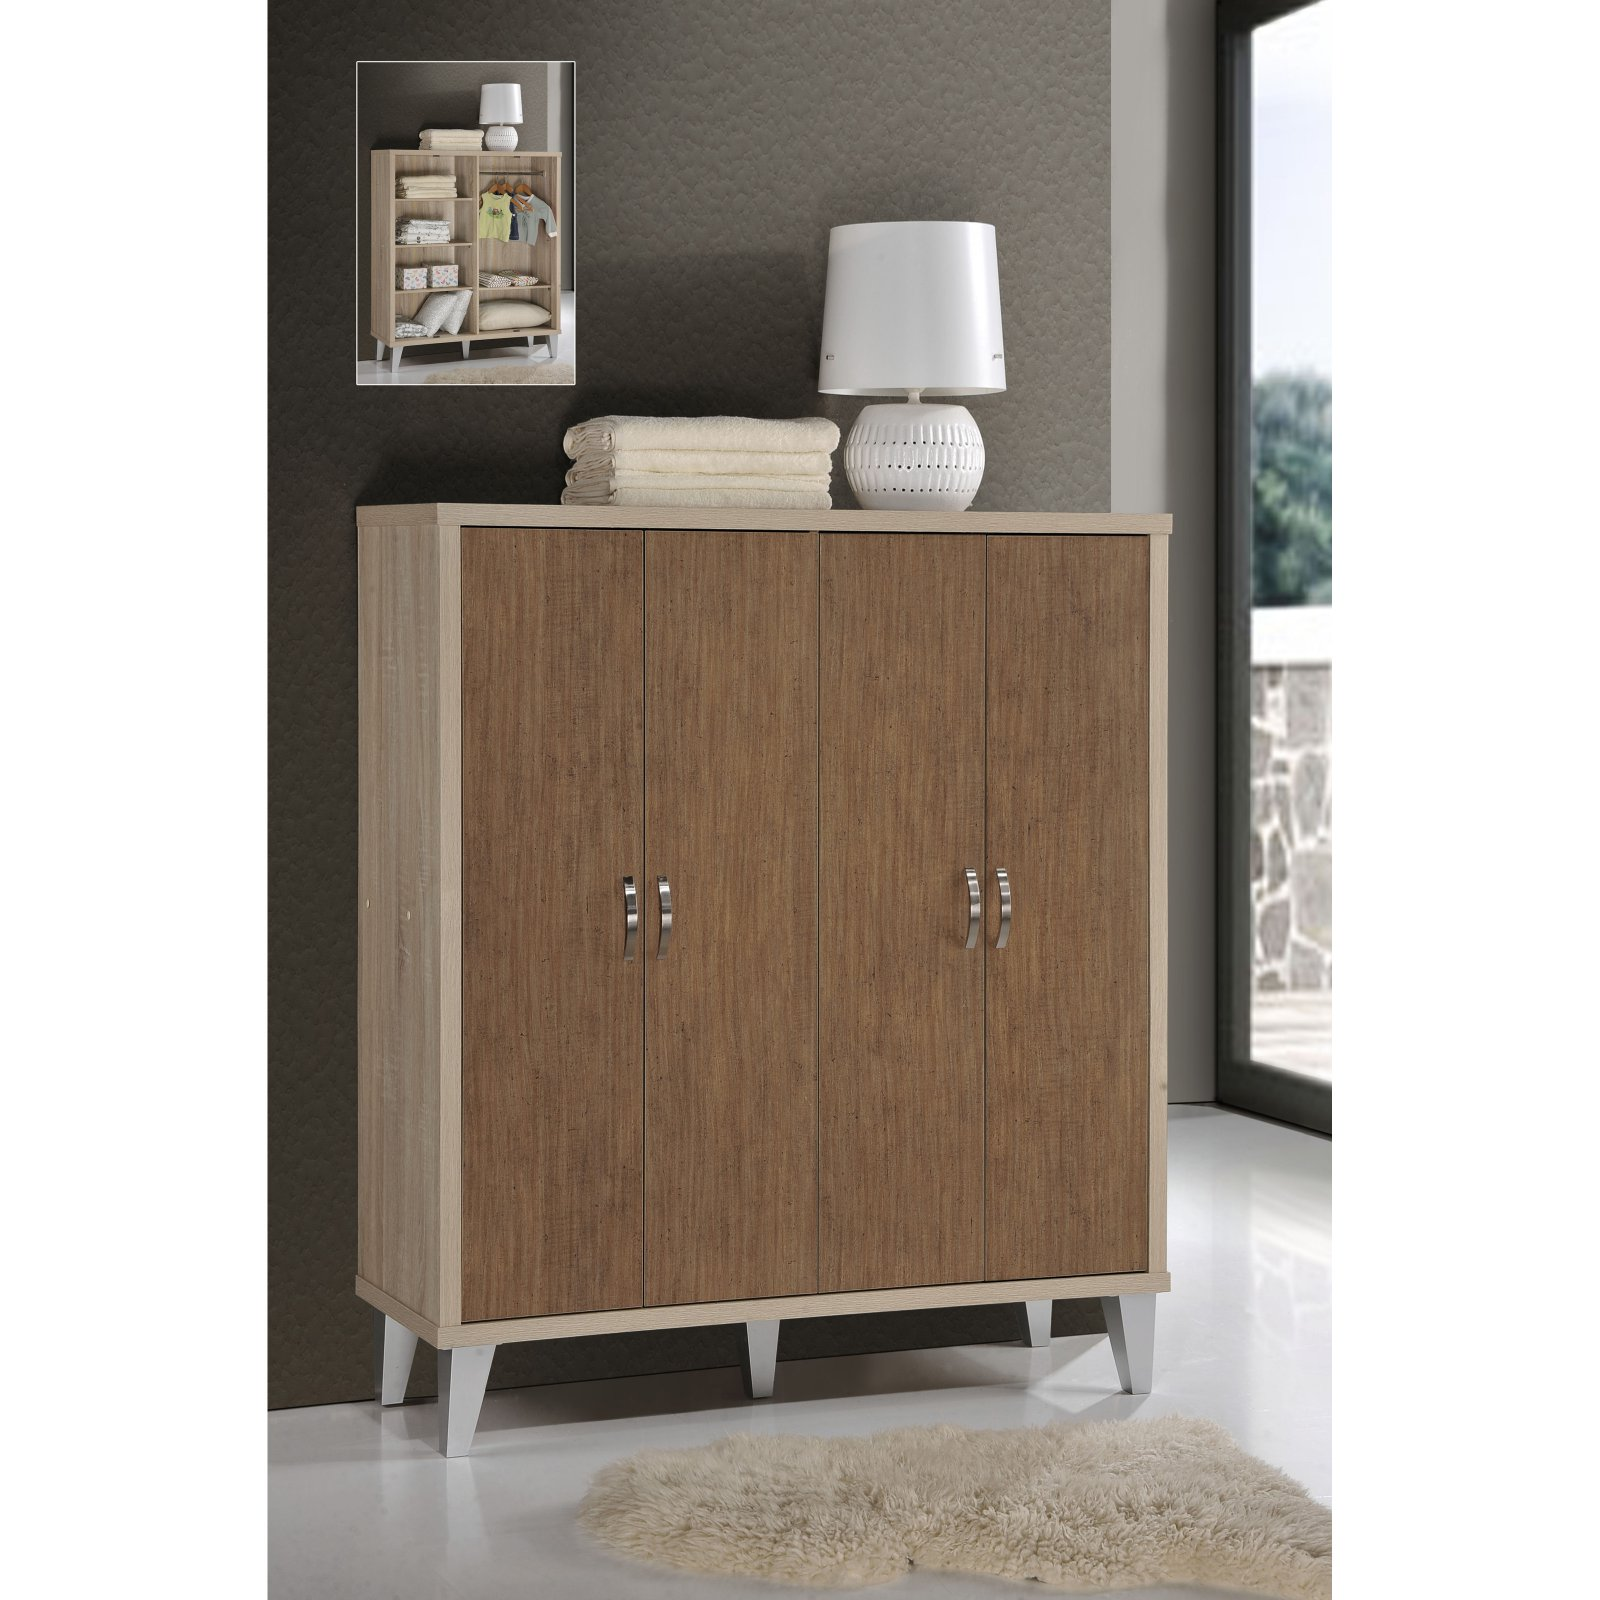 SunTime Outdoor Living Oak/Brown Childs/Guest Wardrobe